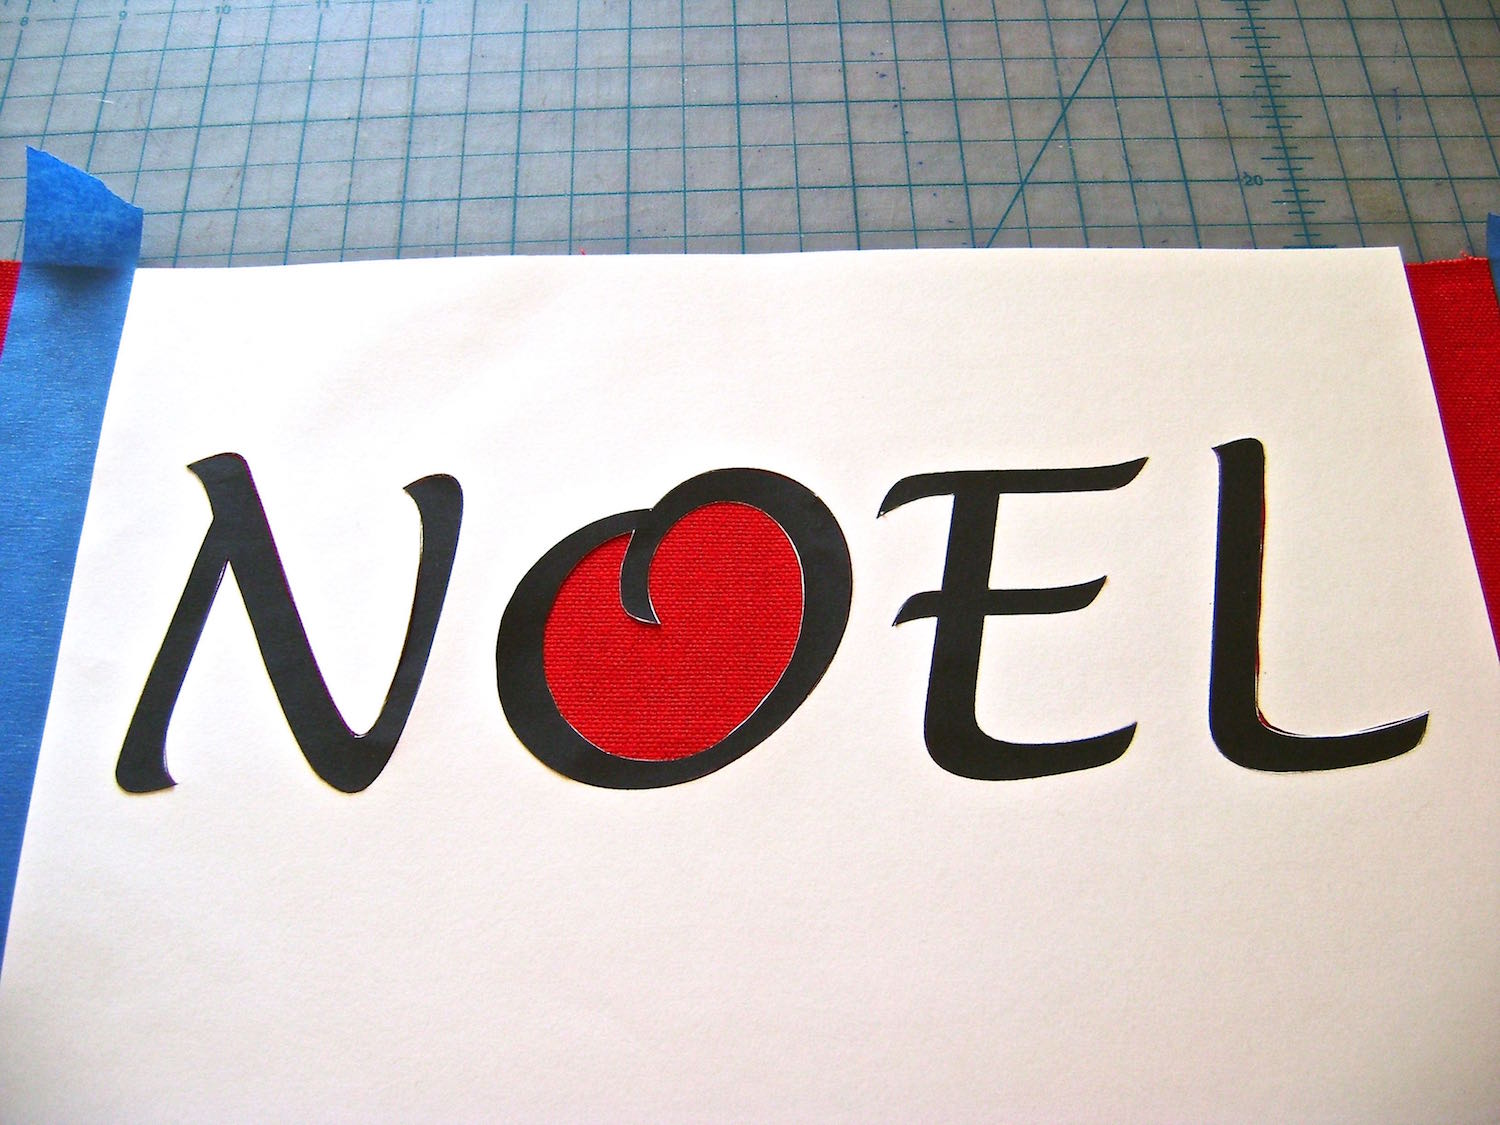 step 7 - Place the four die-cut letters into position on the Noel stencil.  Press down all the edges until they securely adhere to the fabric.